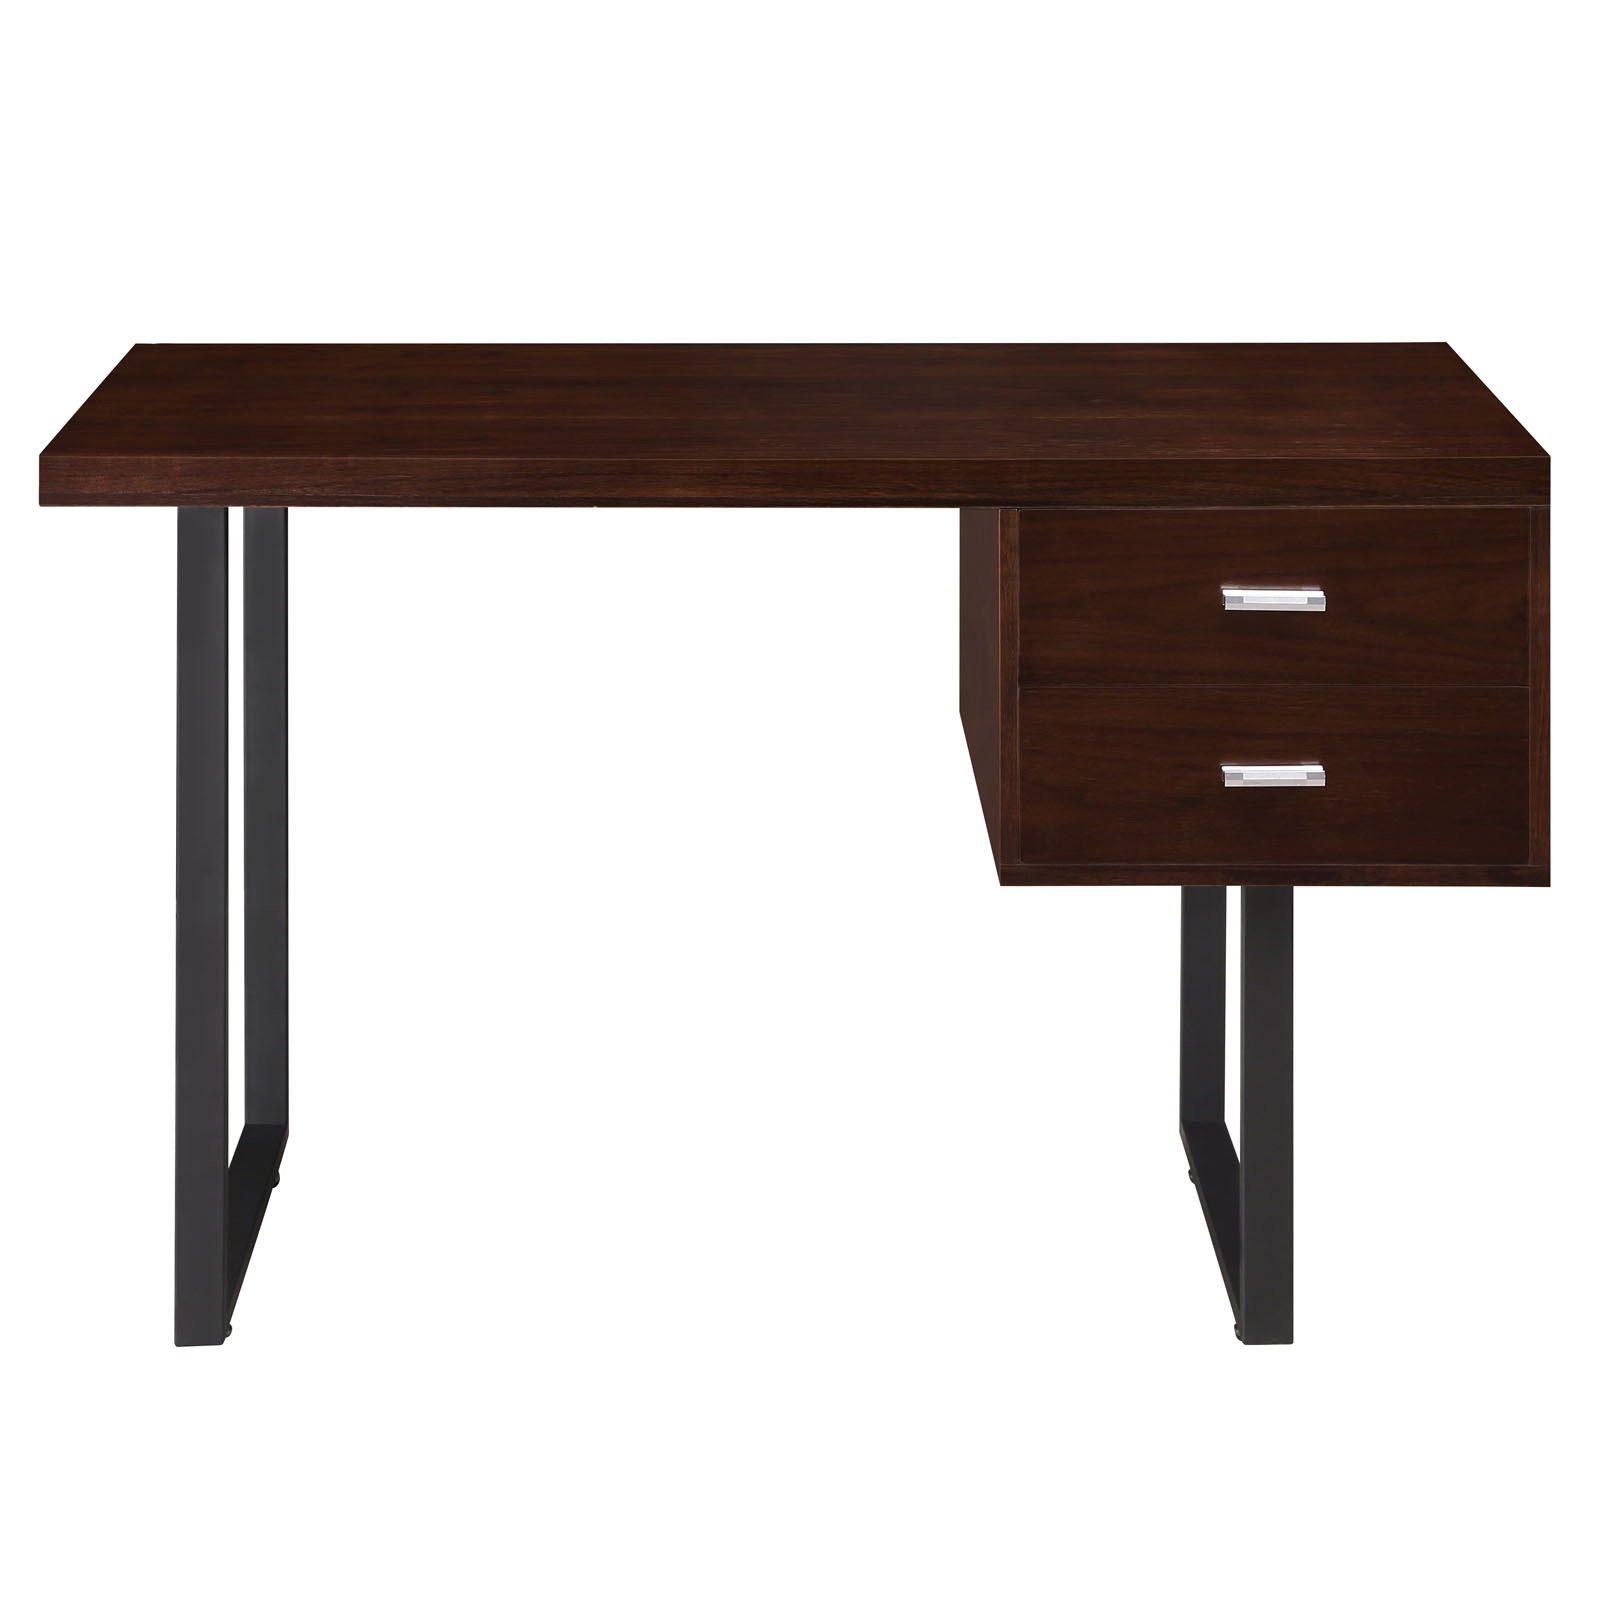 space saving desk from modway front view shown in walnut brown